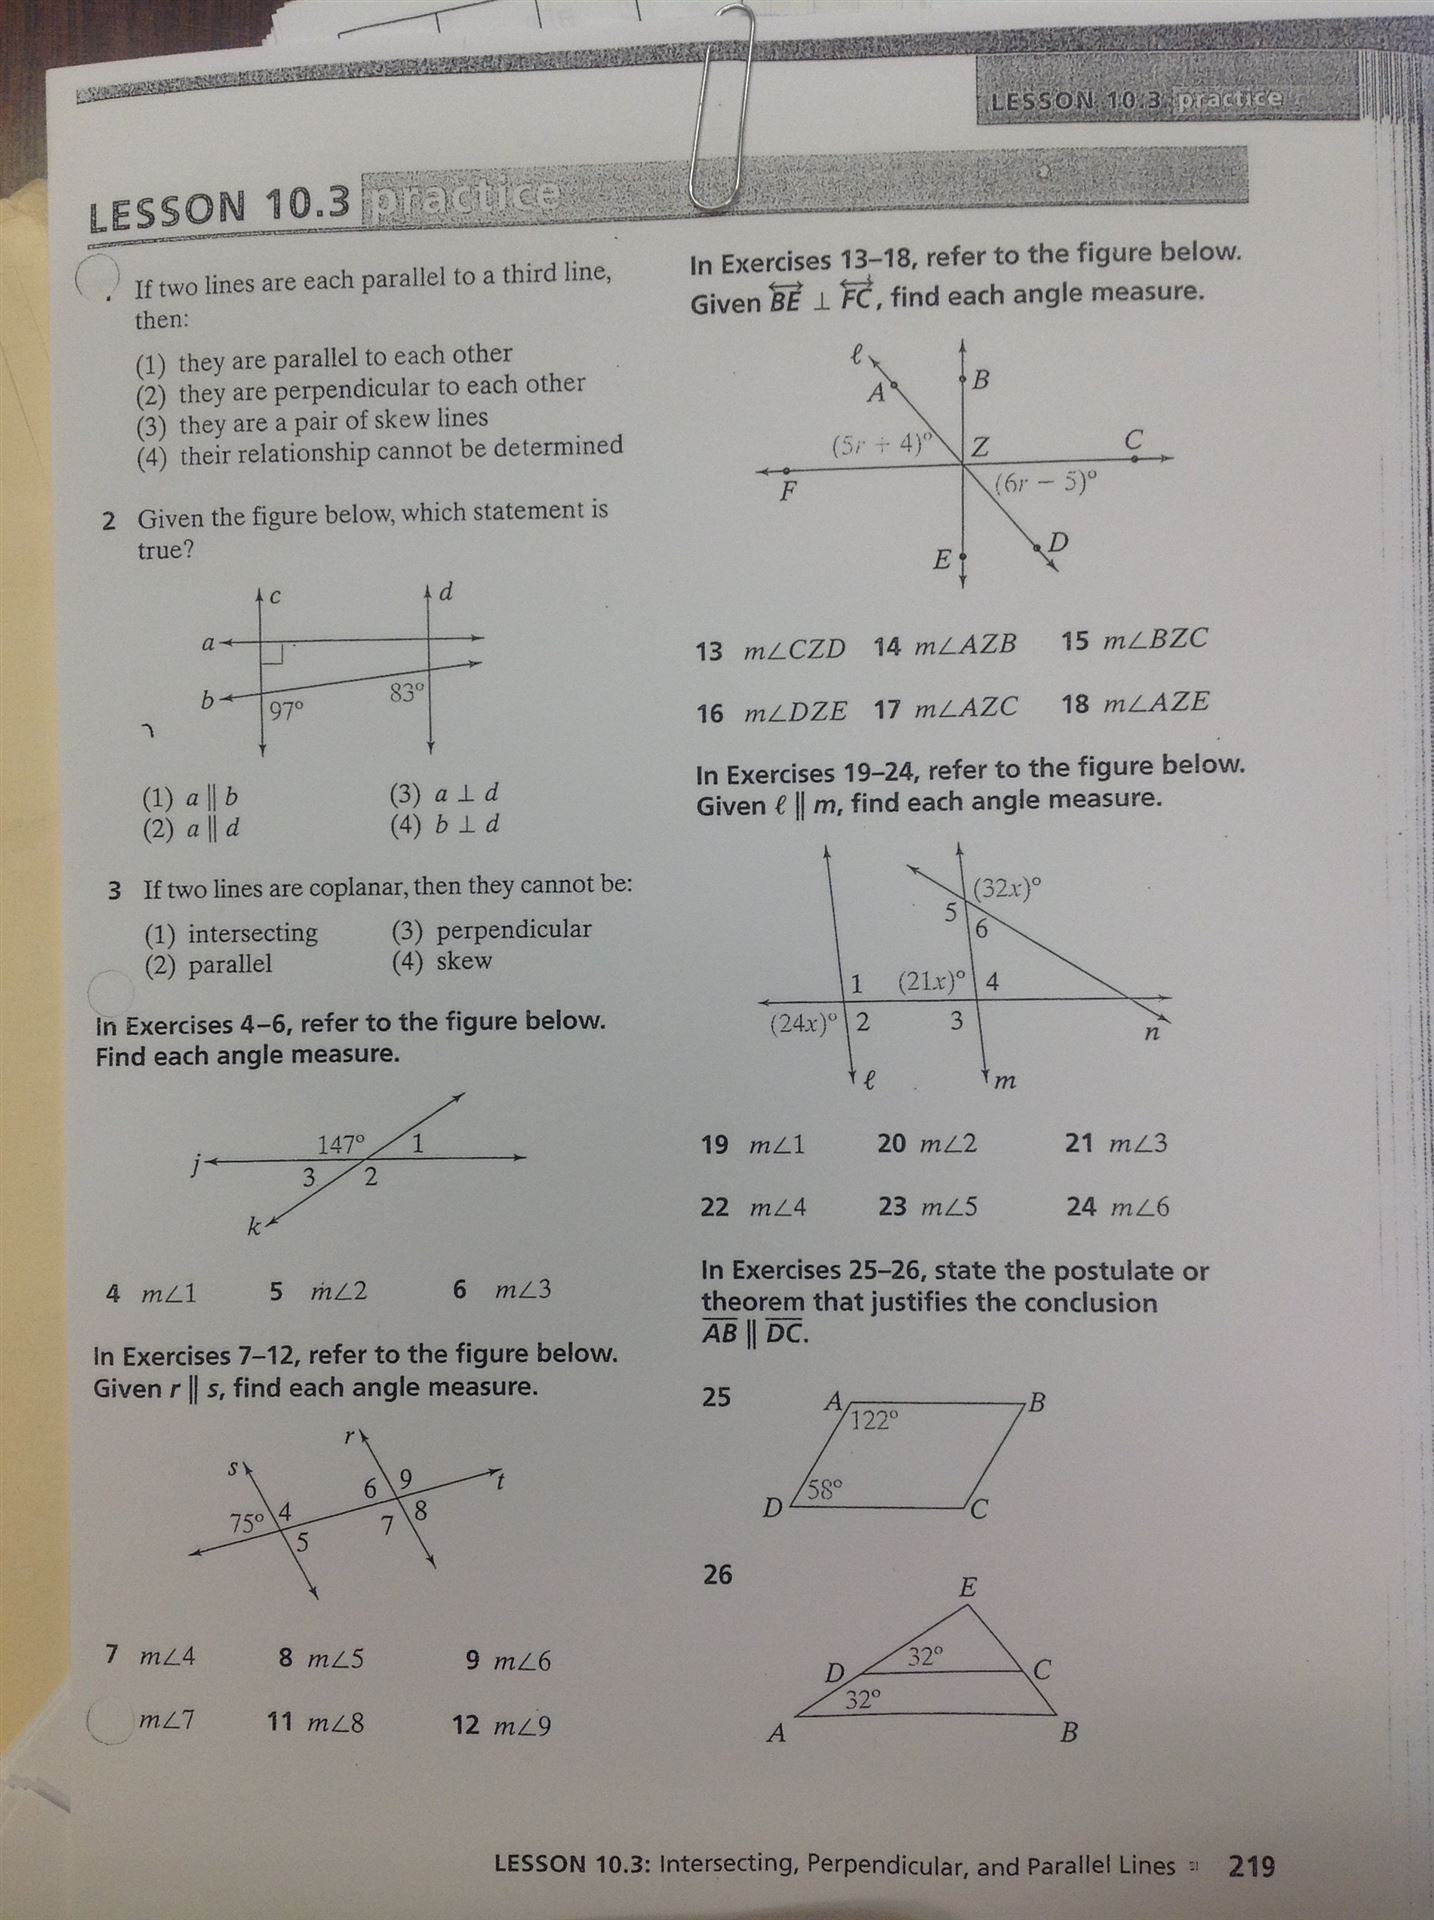 Angle Relationships Worksheet Day 2 Answers - Worksheets for Kids ...